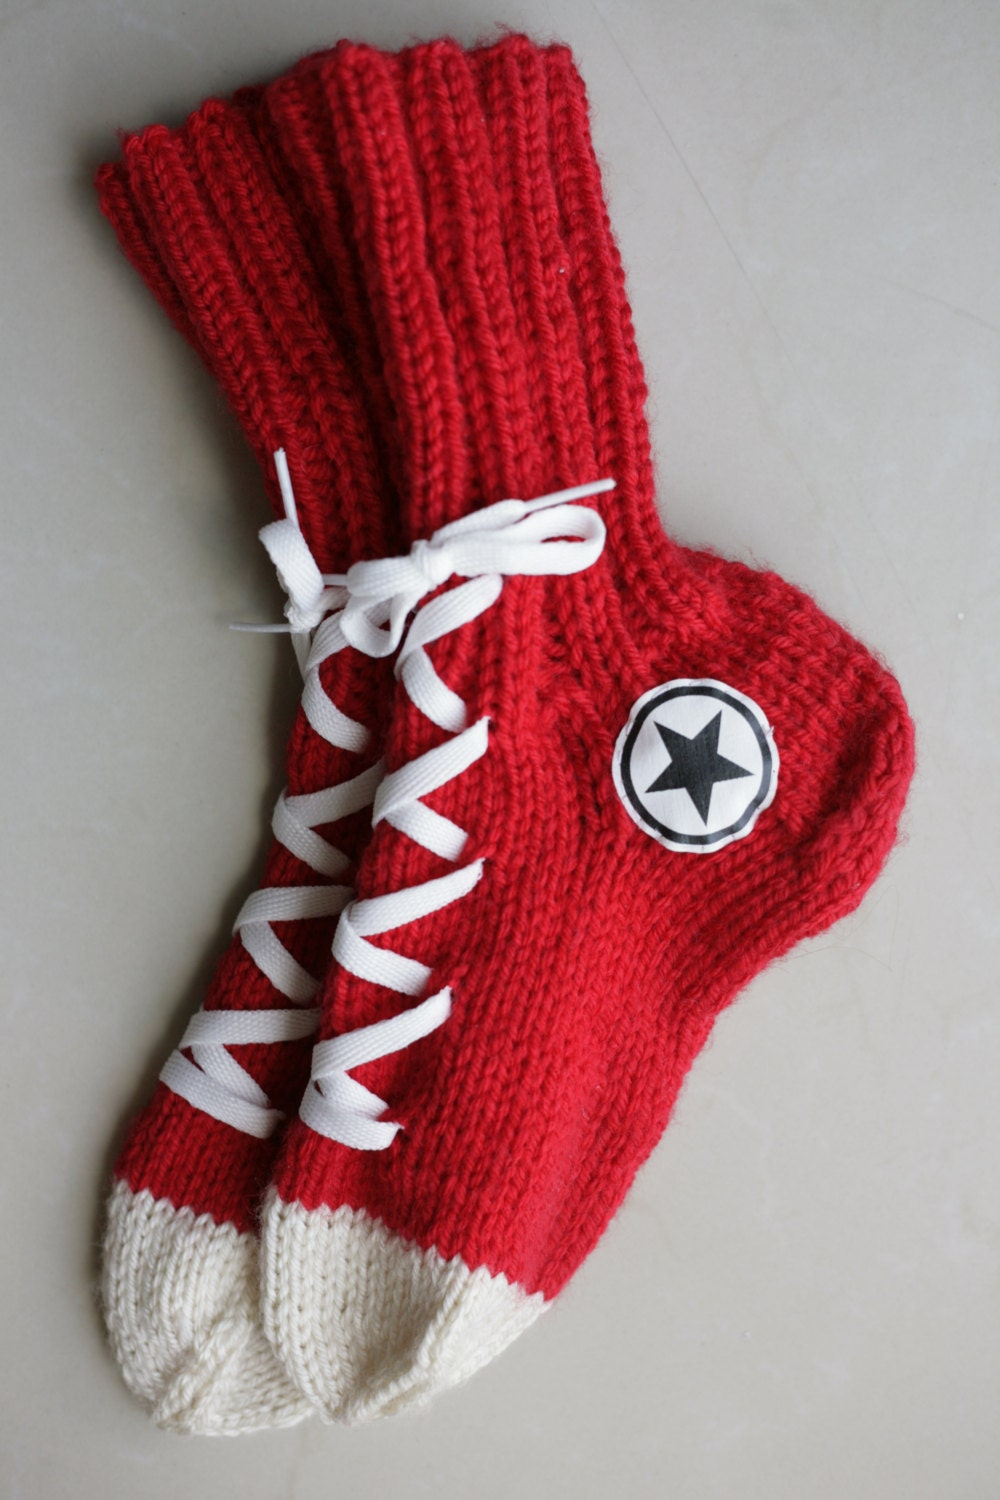 Knitting Pattern For Converse Socks : Hand Knit Converse socks Red Handmade Warm Socks Hipster